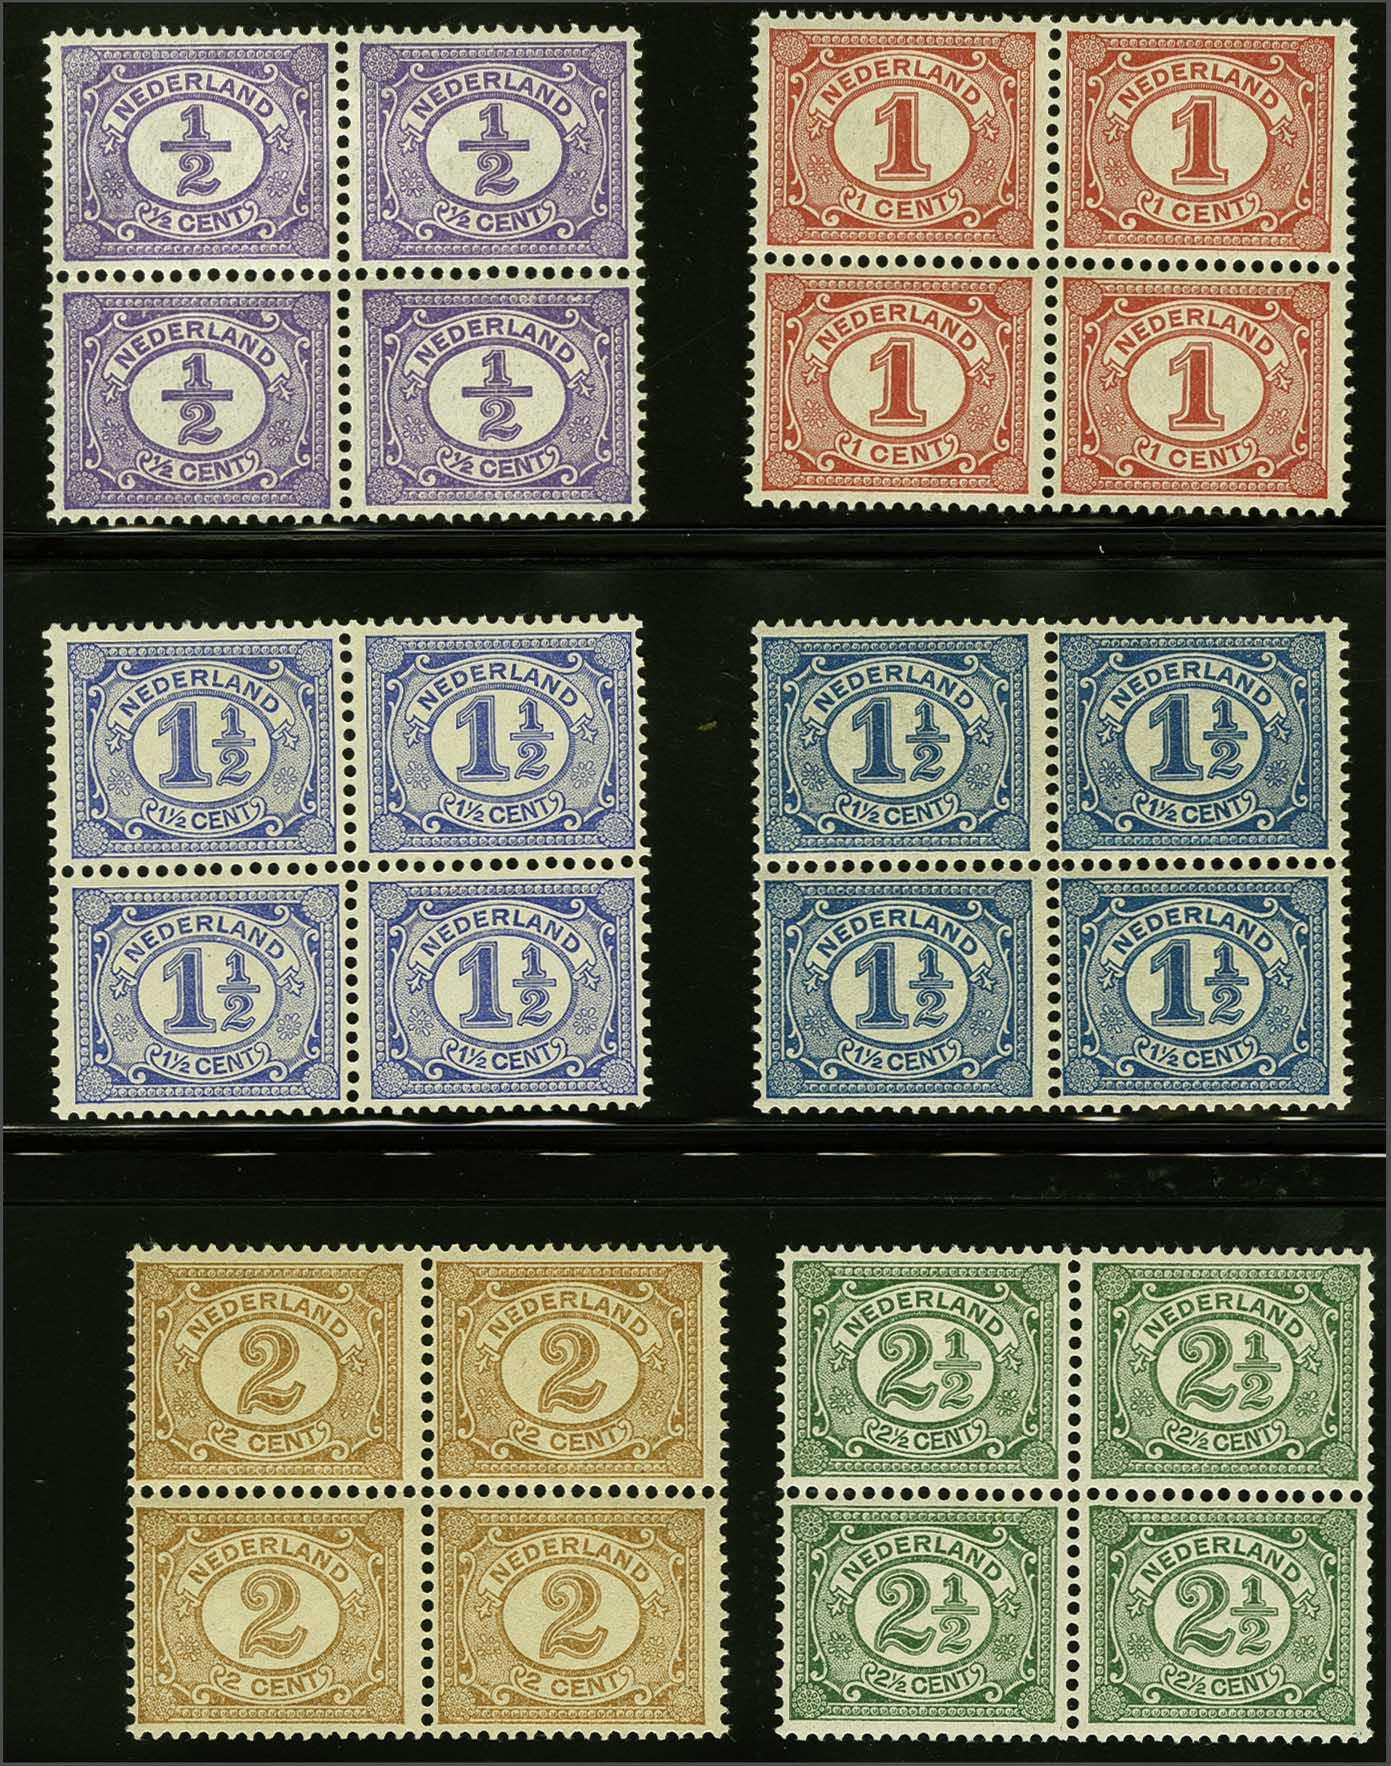 Lot 1809 - Netherlands and former colonies NL 1899 Numerals and Queen Wilhelmina -  Corinphila Veilingen Auction 245-246 Day 3 - Netherlands and former colonies - Single lots, Collections and lots, Boxes and literature